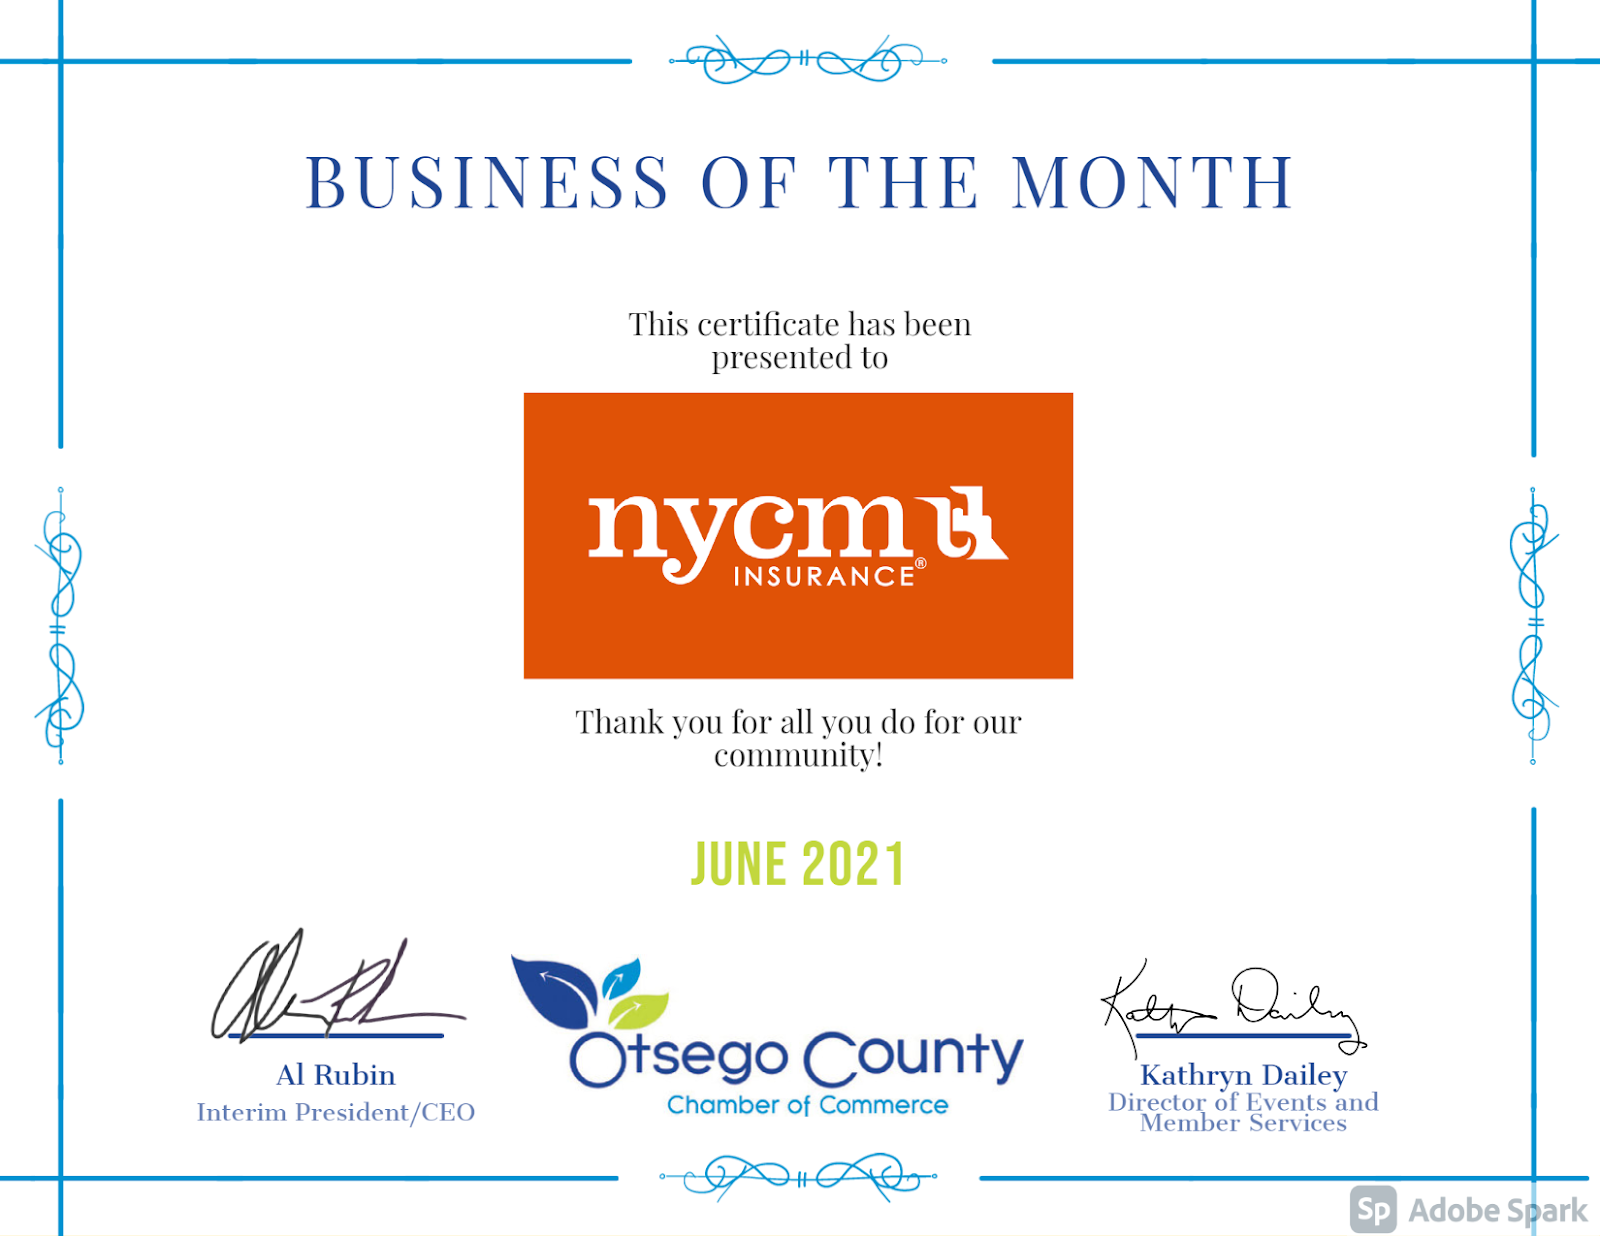 Thank you NYCM for everything you do for our community!  We appreciate you!